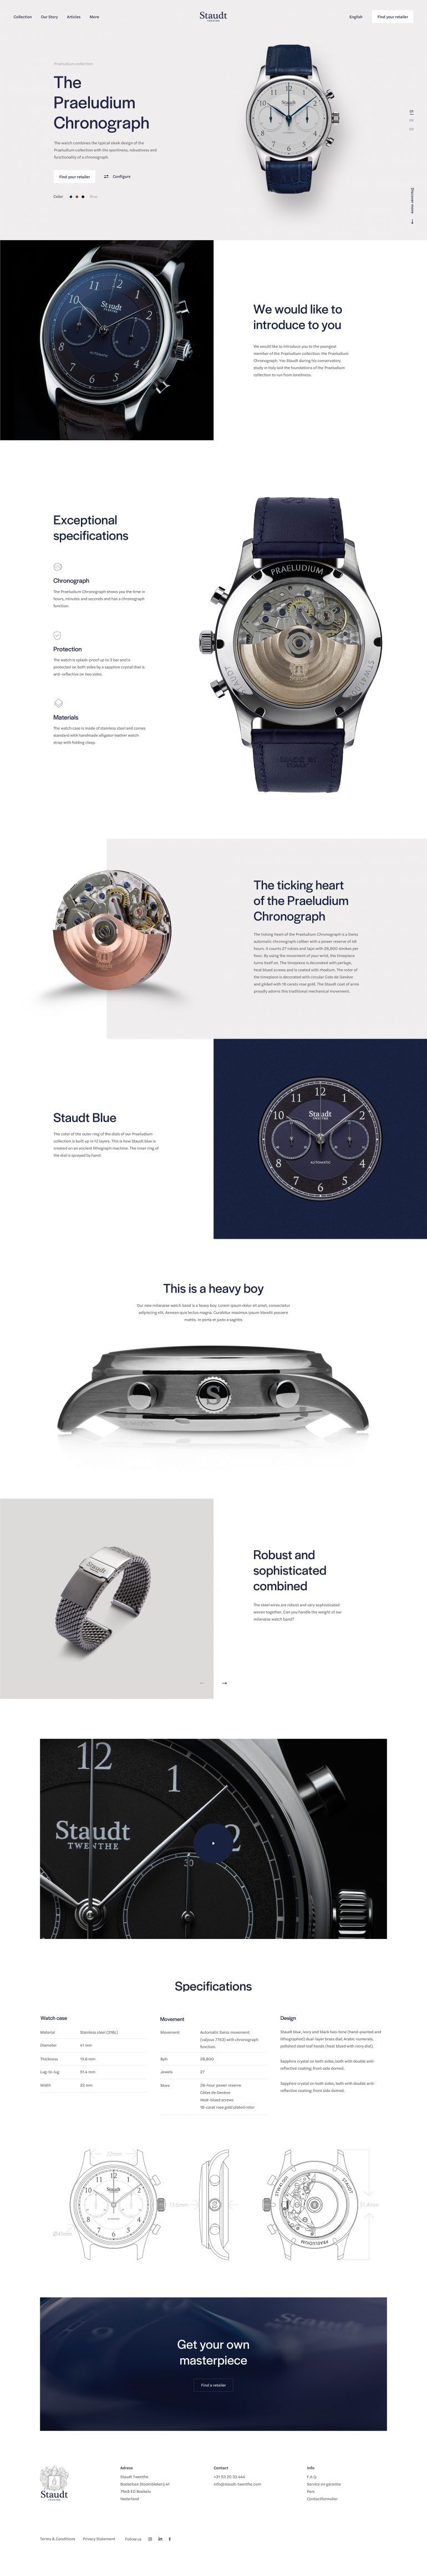 Staudt Product page